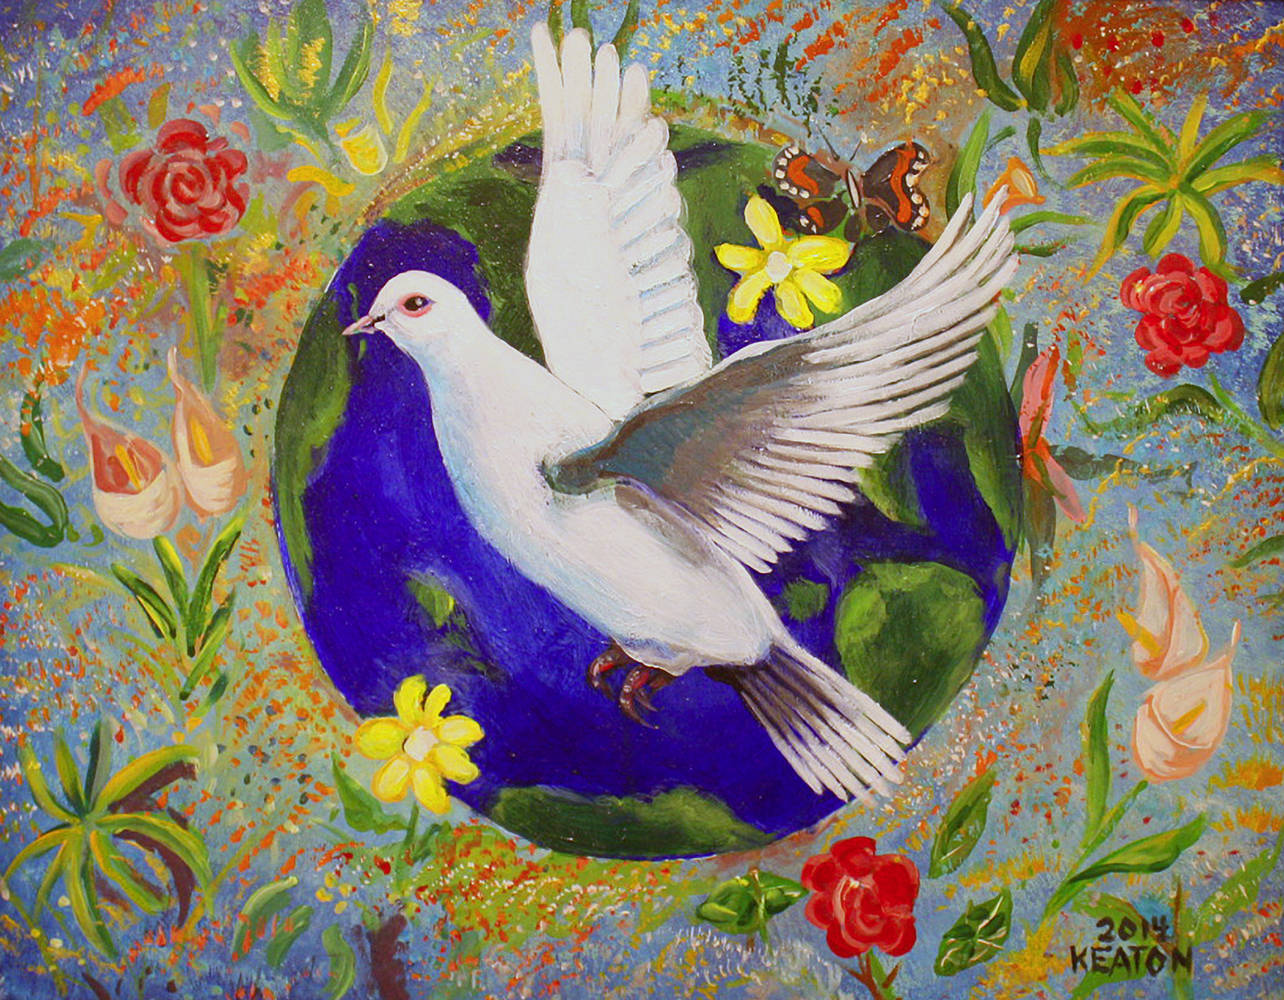 Peace Flight by John Keaton